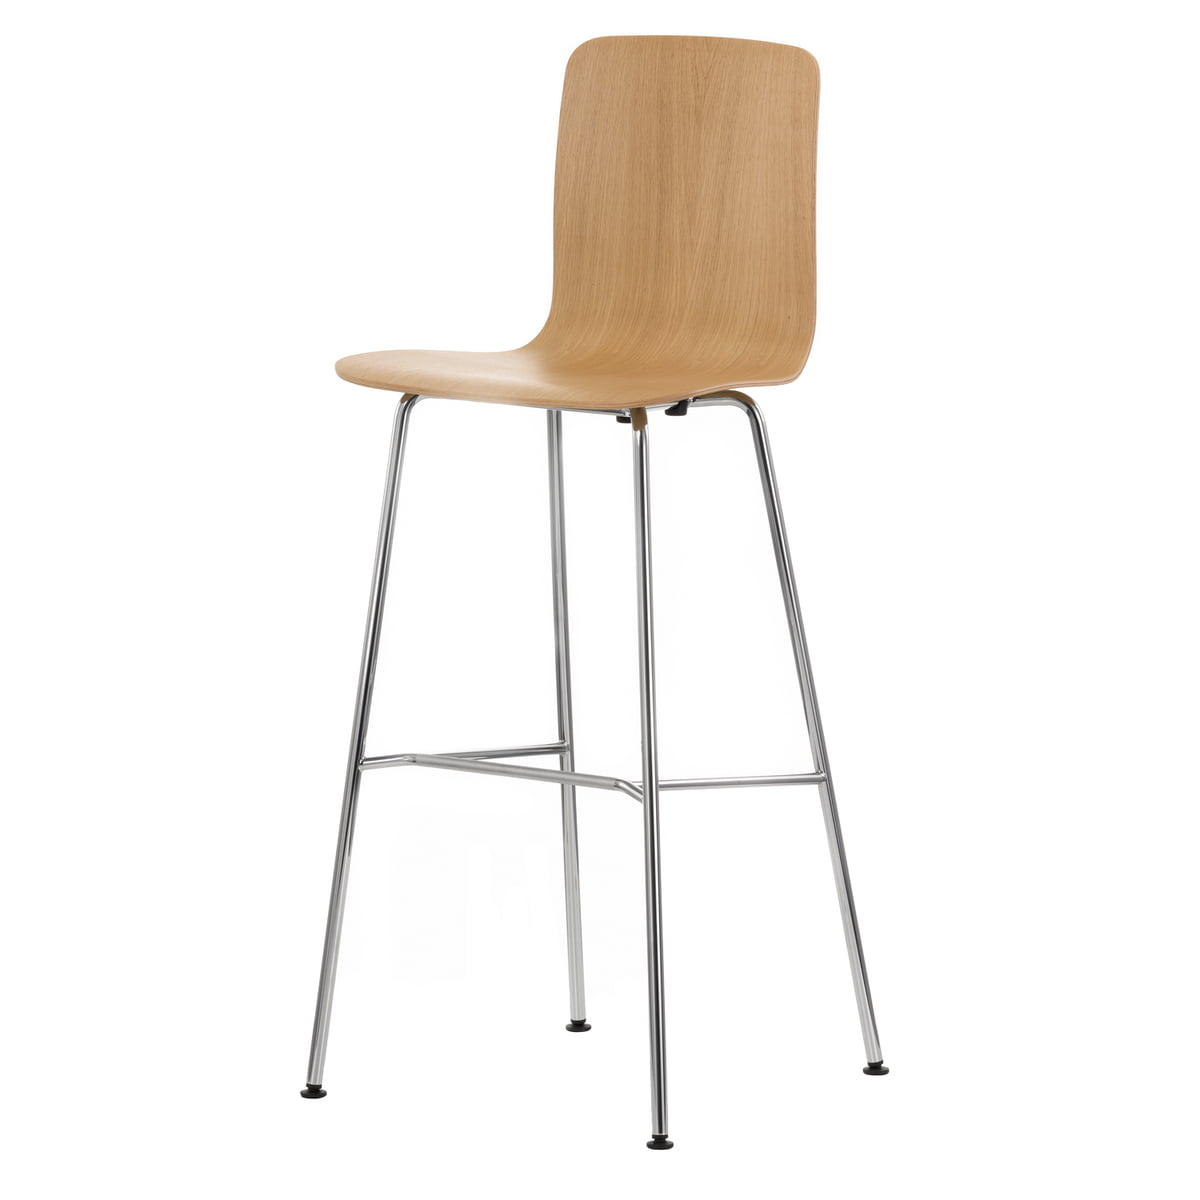 Admirable Vitra Hal Ply Stool High Glanzend Eikenhout Kunststof Pads Gmtry Best Dining Table And Chair Ideas Images Gmtryco